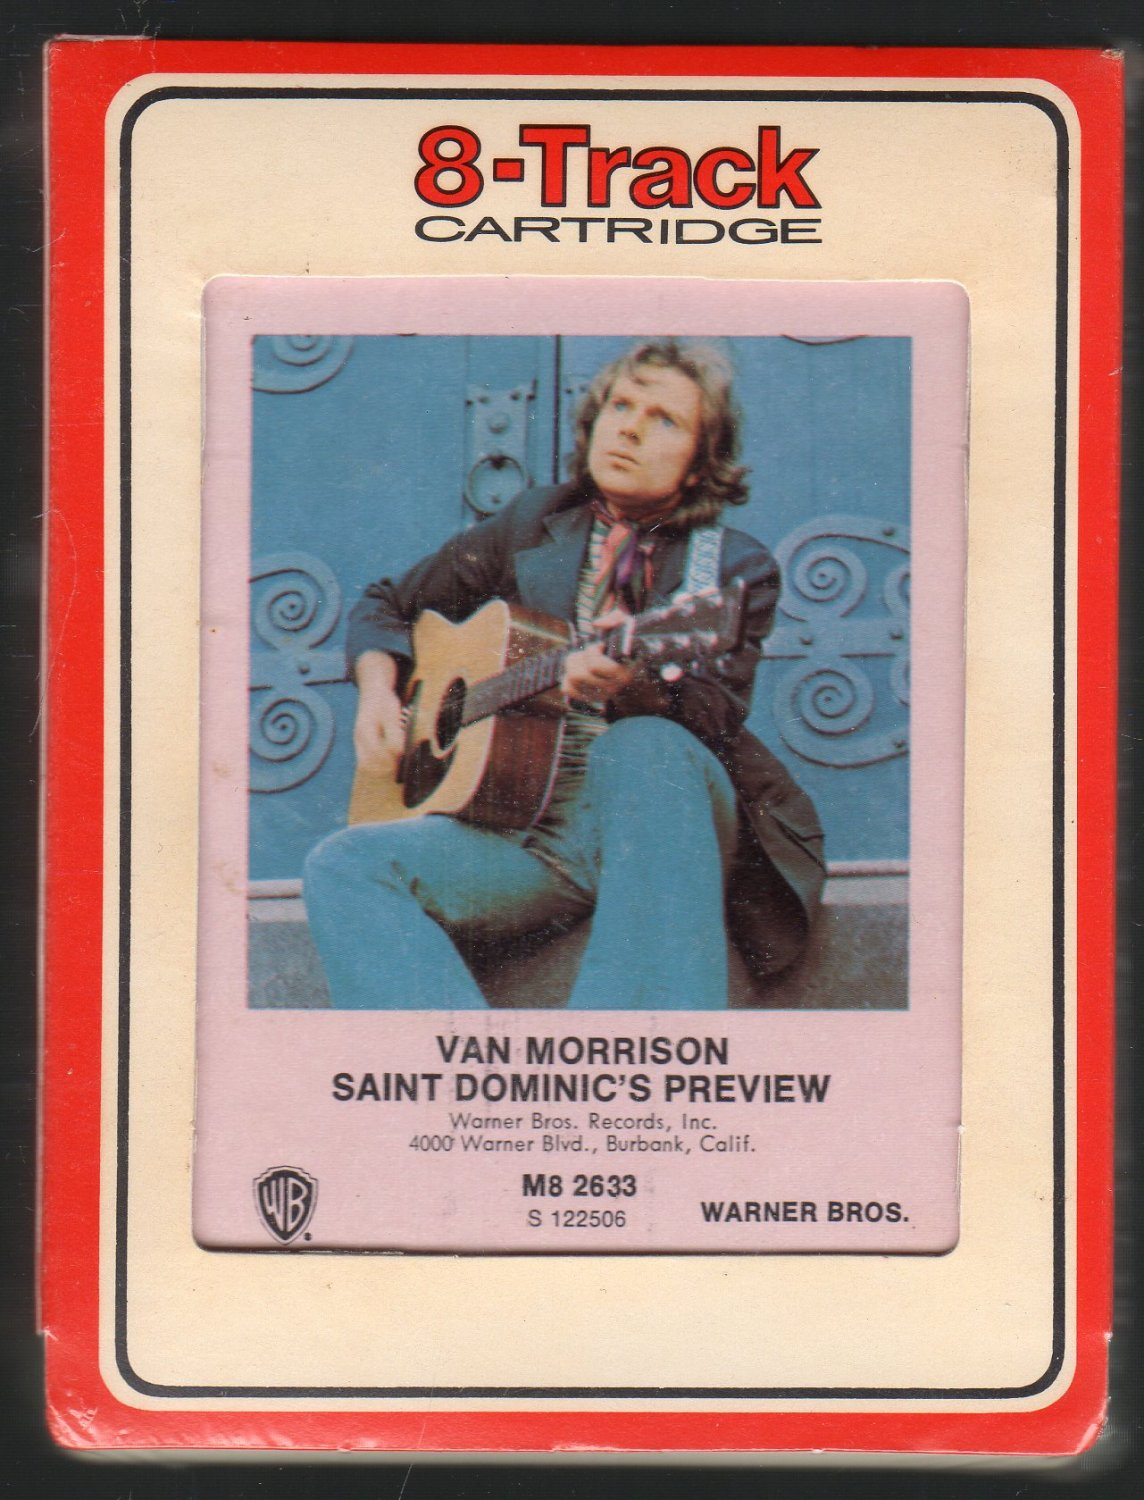 Van Morrison - St. Dominics Preview 1972 RCA Sealed A52 8-track tape